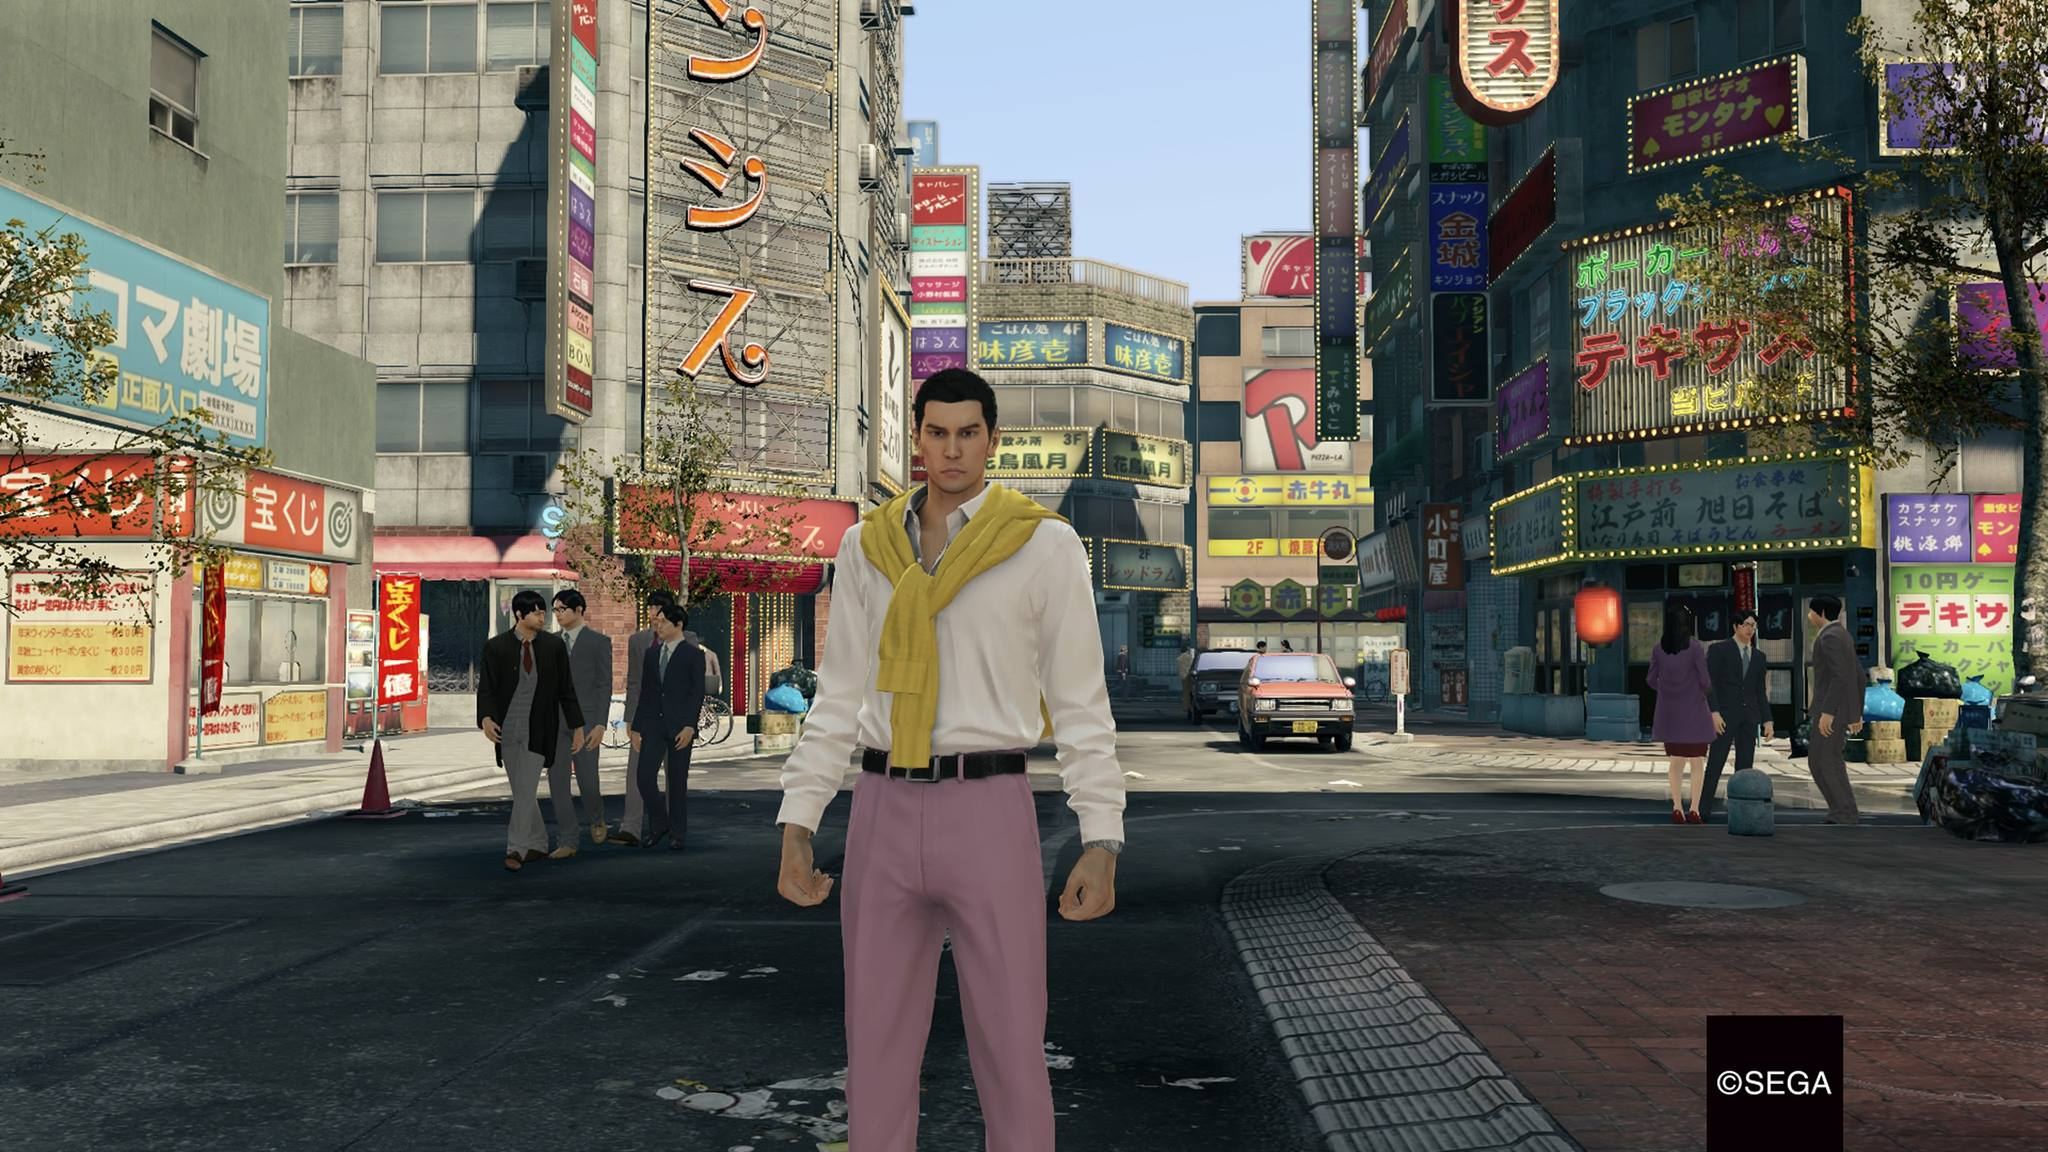 Yakuza 0 Patch 1.05 Now Live! - Yakuza Fan